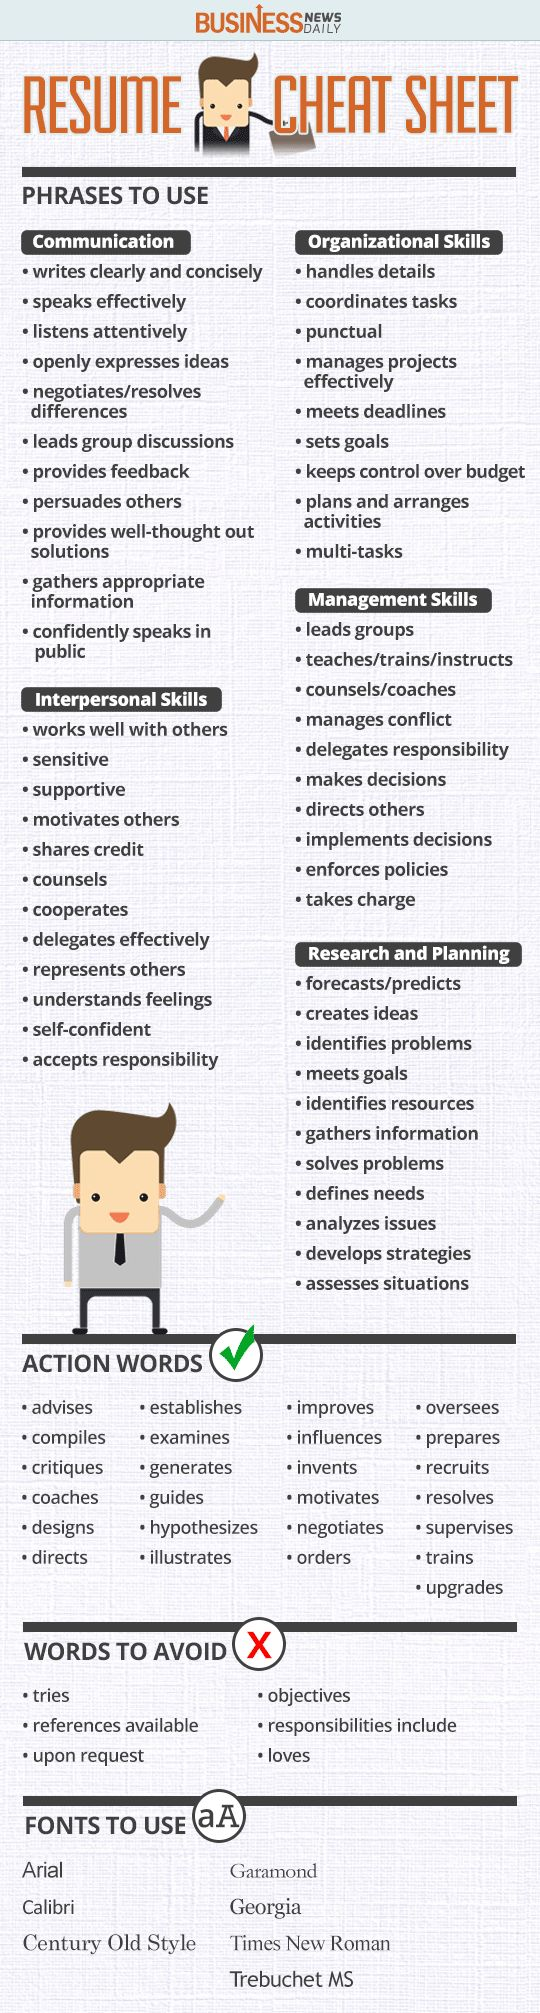 Opposenewapstandardsus  Stunning  Ideas About Resume On Pinterest  Cv Format Resume Cv And  With Fair Resume Cheat Sheet Infographic Andrews Almost Done With A Complete Unit On Employment Which With Astounding Payroll Clerk Resume Also Resume Letterhead In Addition Professional Resume Template Word And Retail Experience On Resume As Well As Computer Skills To Put On A Resume Additionally How To Write Resumes From Pinterestcom With Opposenewapstandardsus  Fair  Ideas About Resume On Pinterest  Cv Format Resume Cv And  With Astounding Resume Cheat Sheet Infographic Andrews Almost Done With A Complete Unit On Employment Which And Stunning Payroll Clerk Resume Also Resume Letterhead In Addition Professional Resume Template Word From Pinterestcom